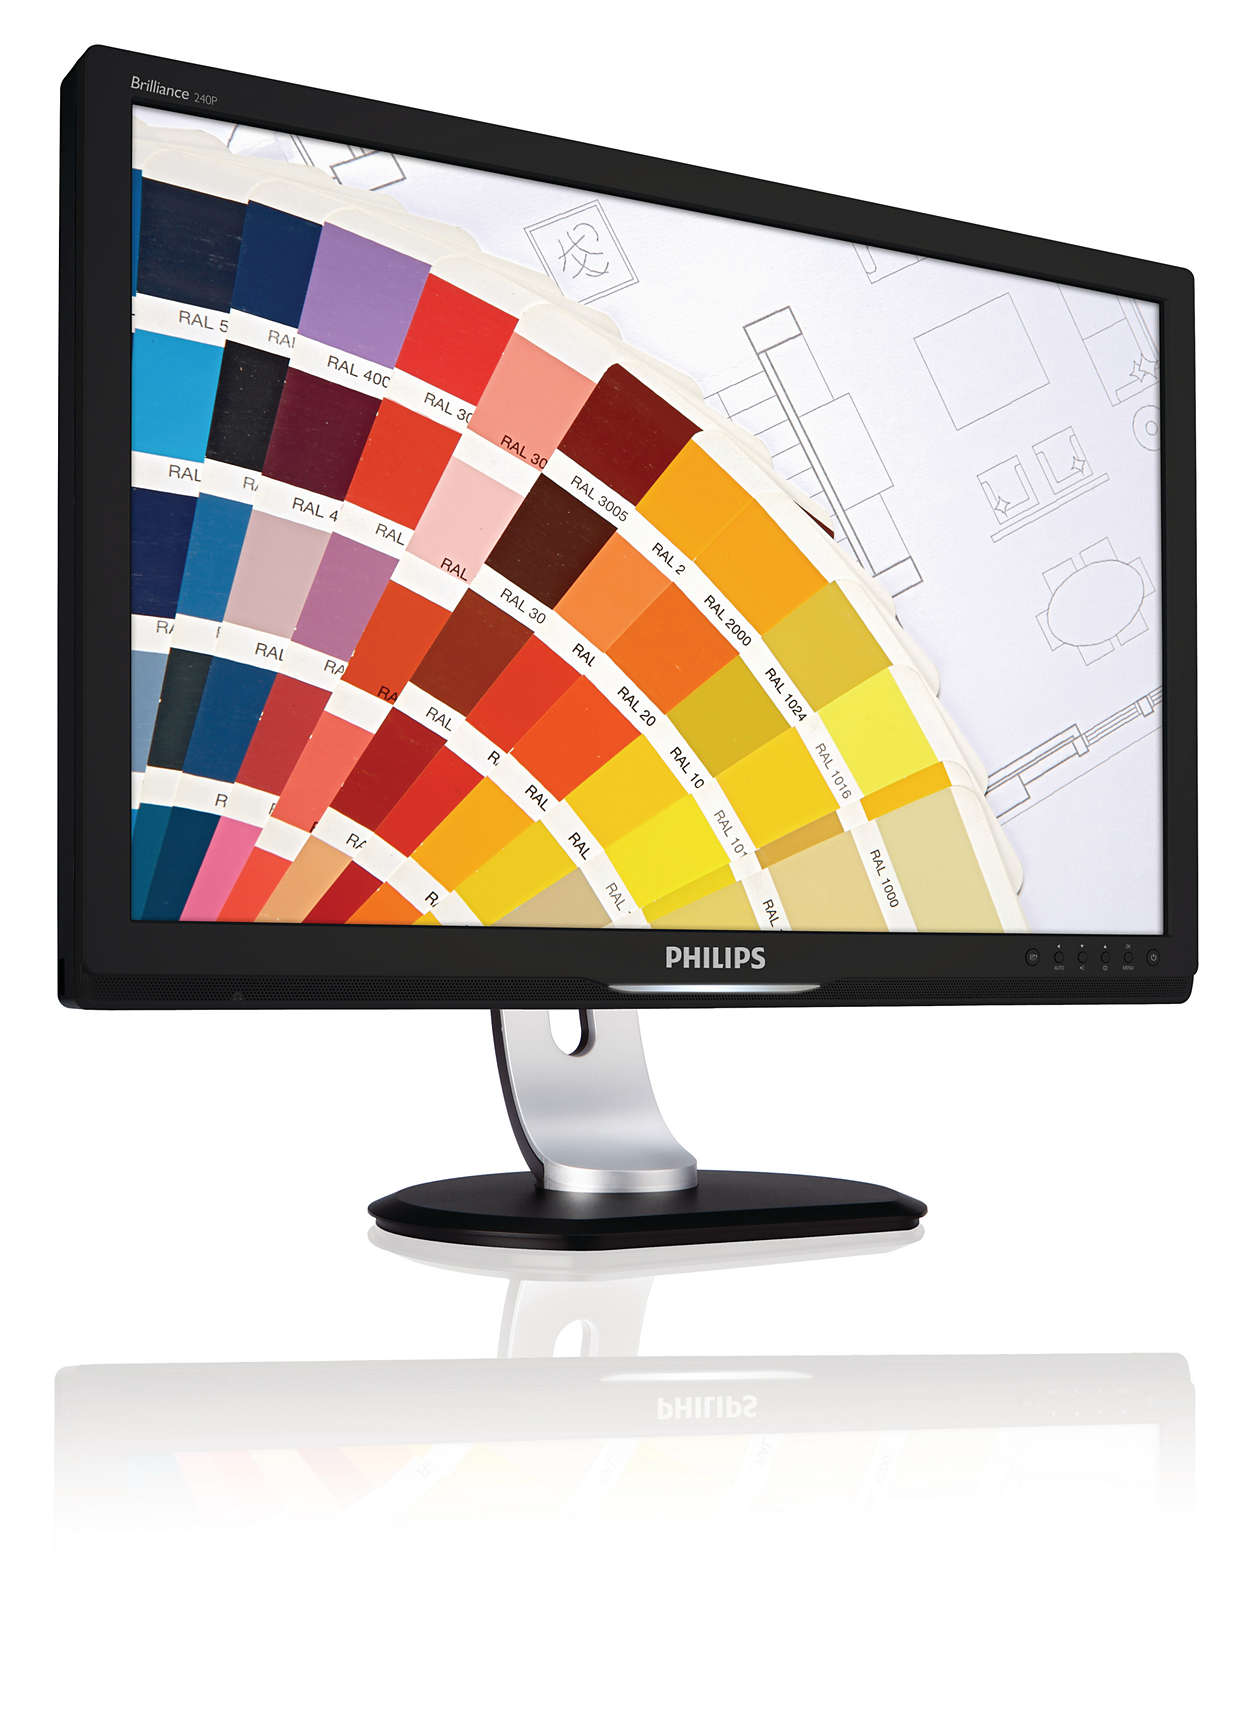 Professional ergonomic display boosts productivity